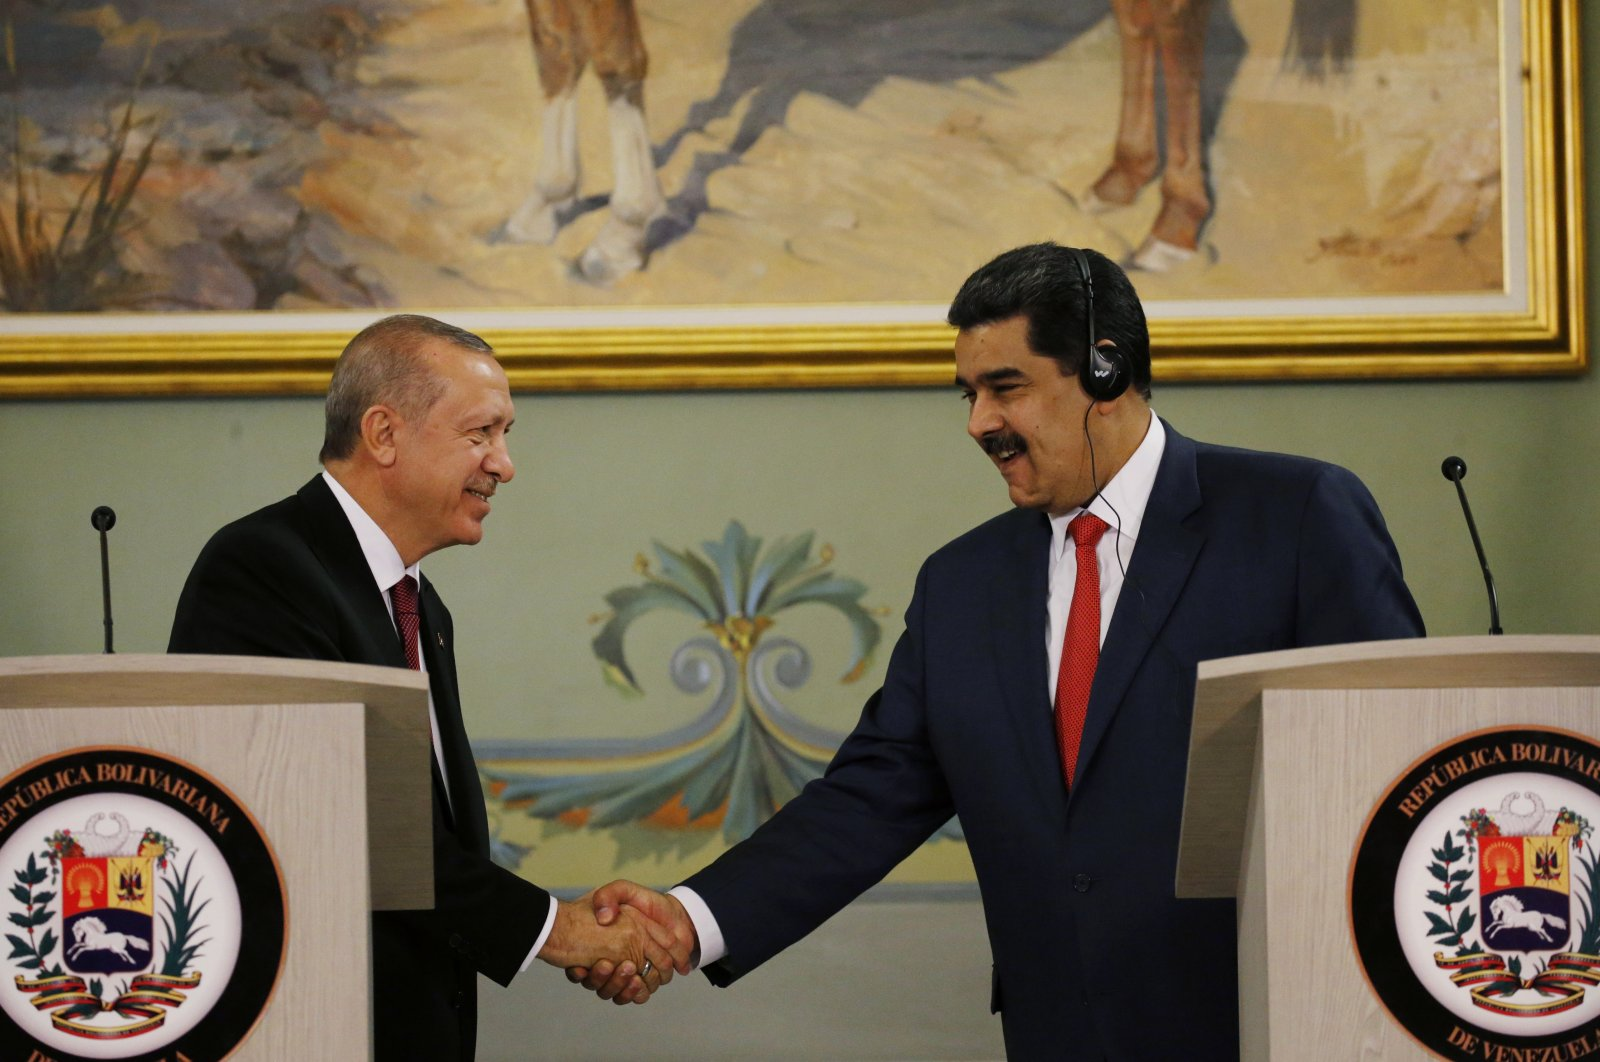 President Recep Tayyip Erdoğan (L) shakes hands with Venezuela's President Nicolas Maduro after a joint press conference at the Miraflores Presidential Palace, Caracas, Venezuela, Dec. 3, 2018. (AP File Photo)